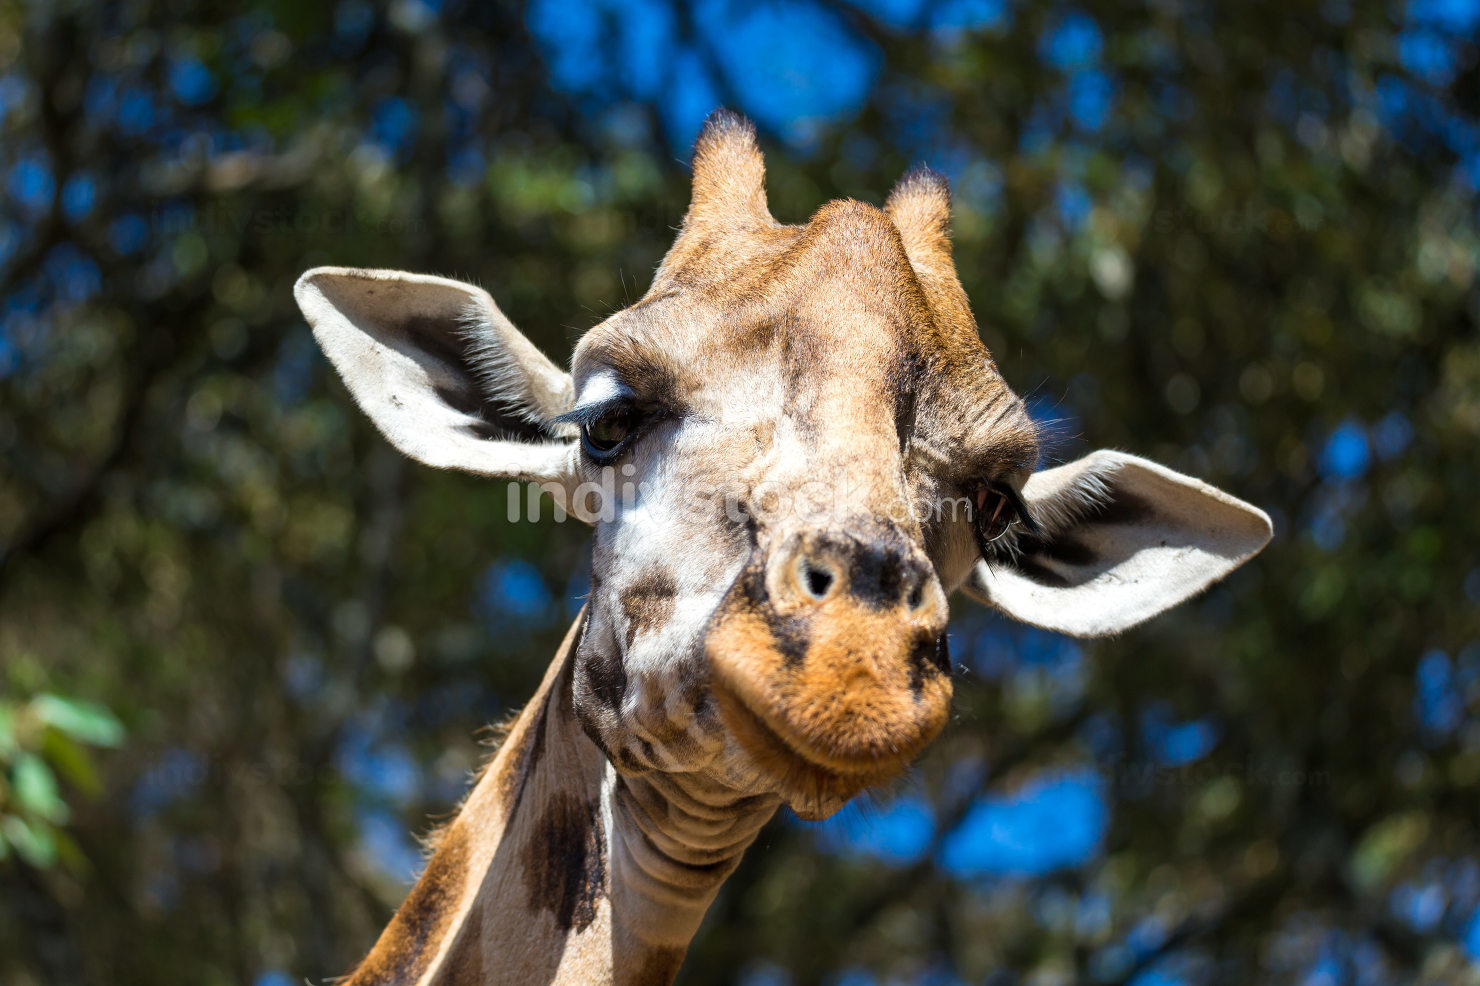 A close-up of a giraffe